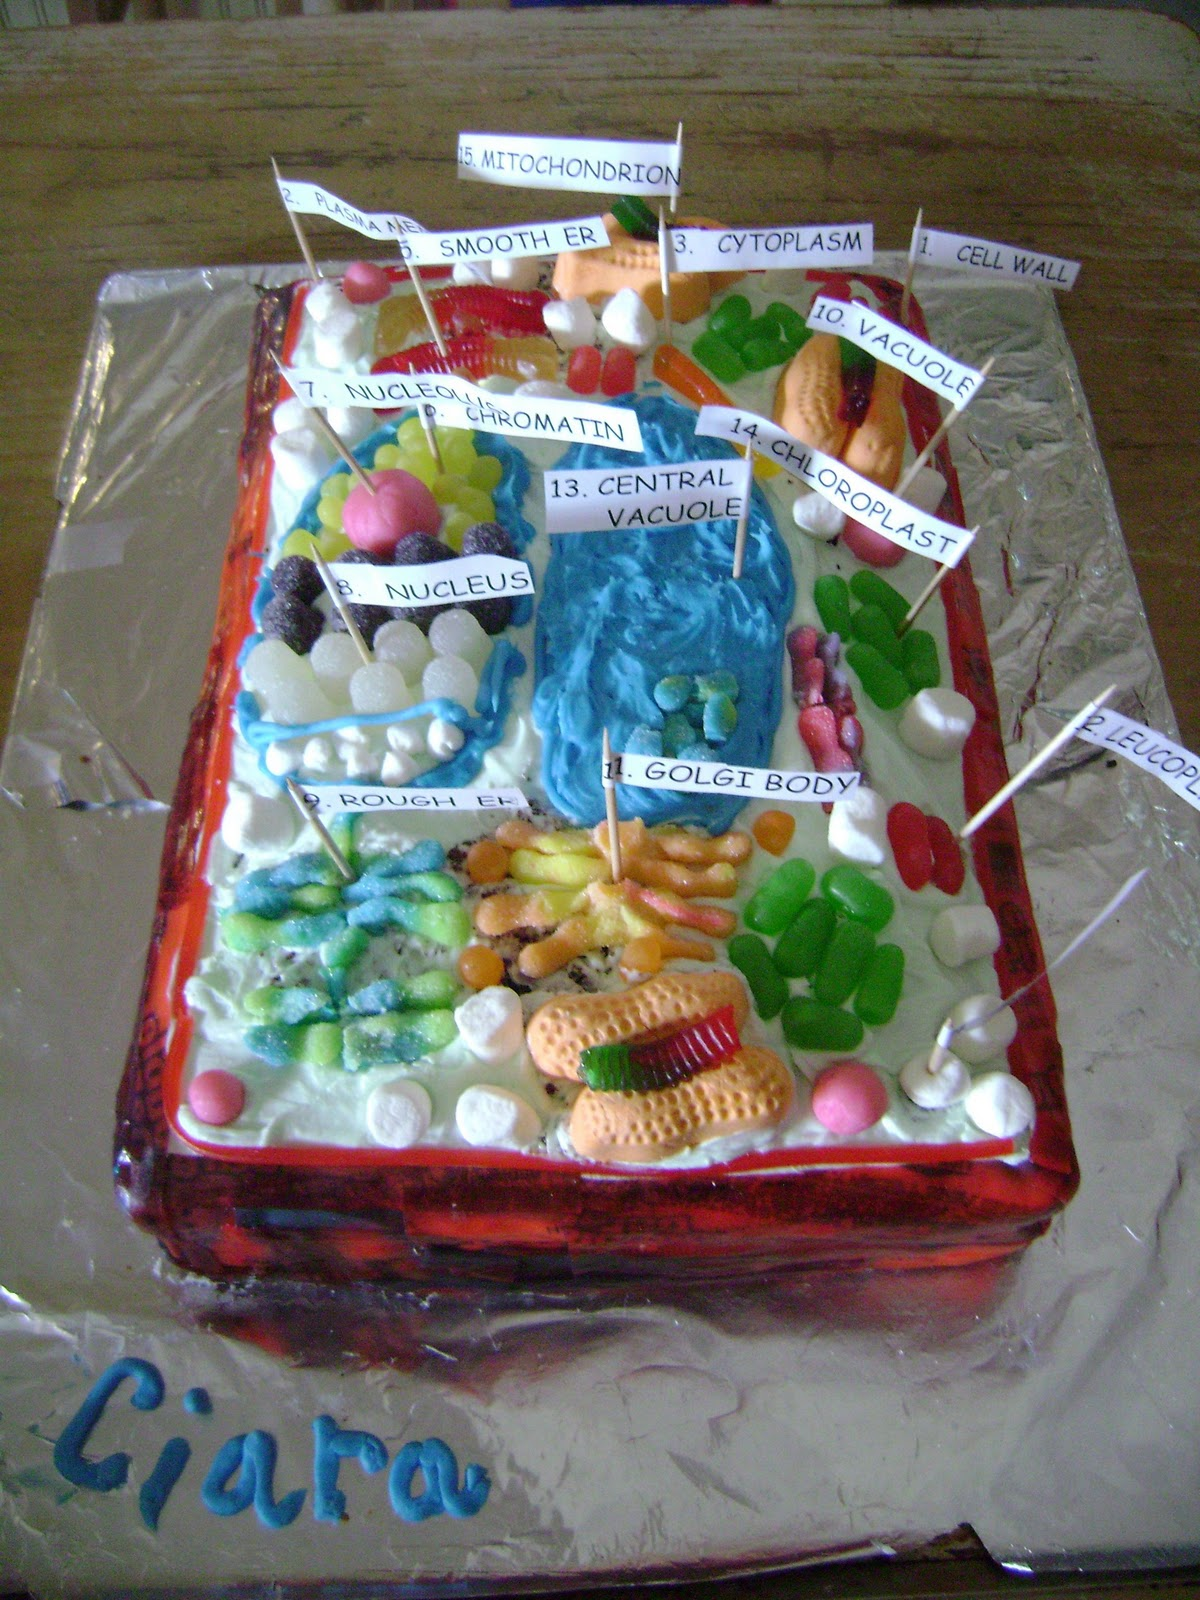 Jello Edible Plant Cell Projects http://burganfamily.blogspot.com/2010/10/edible-cell-project.html